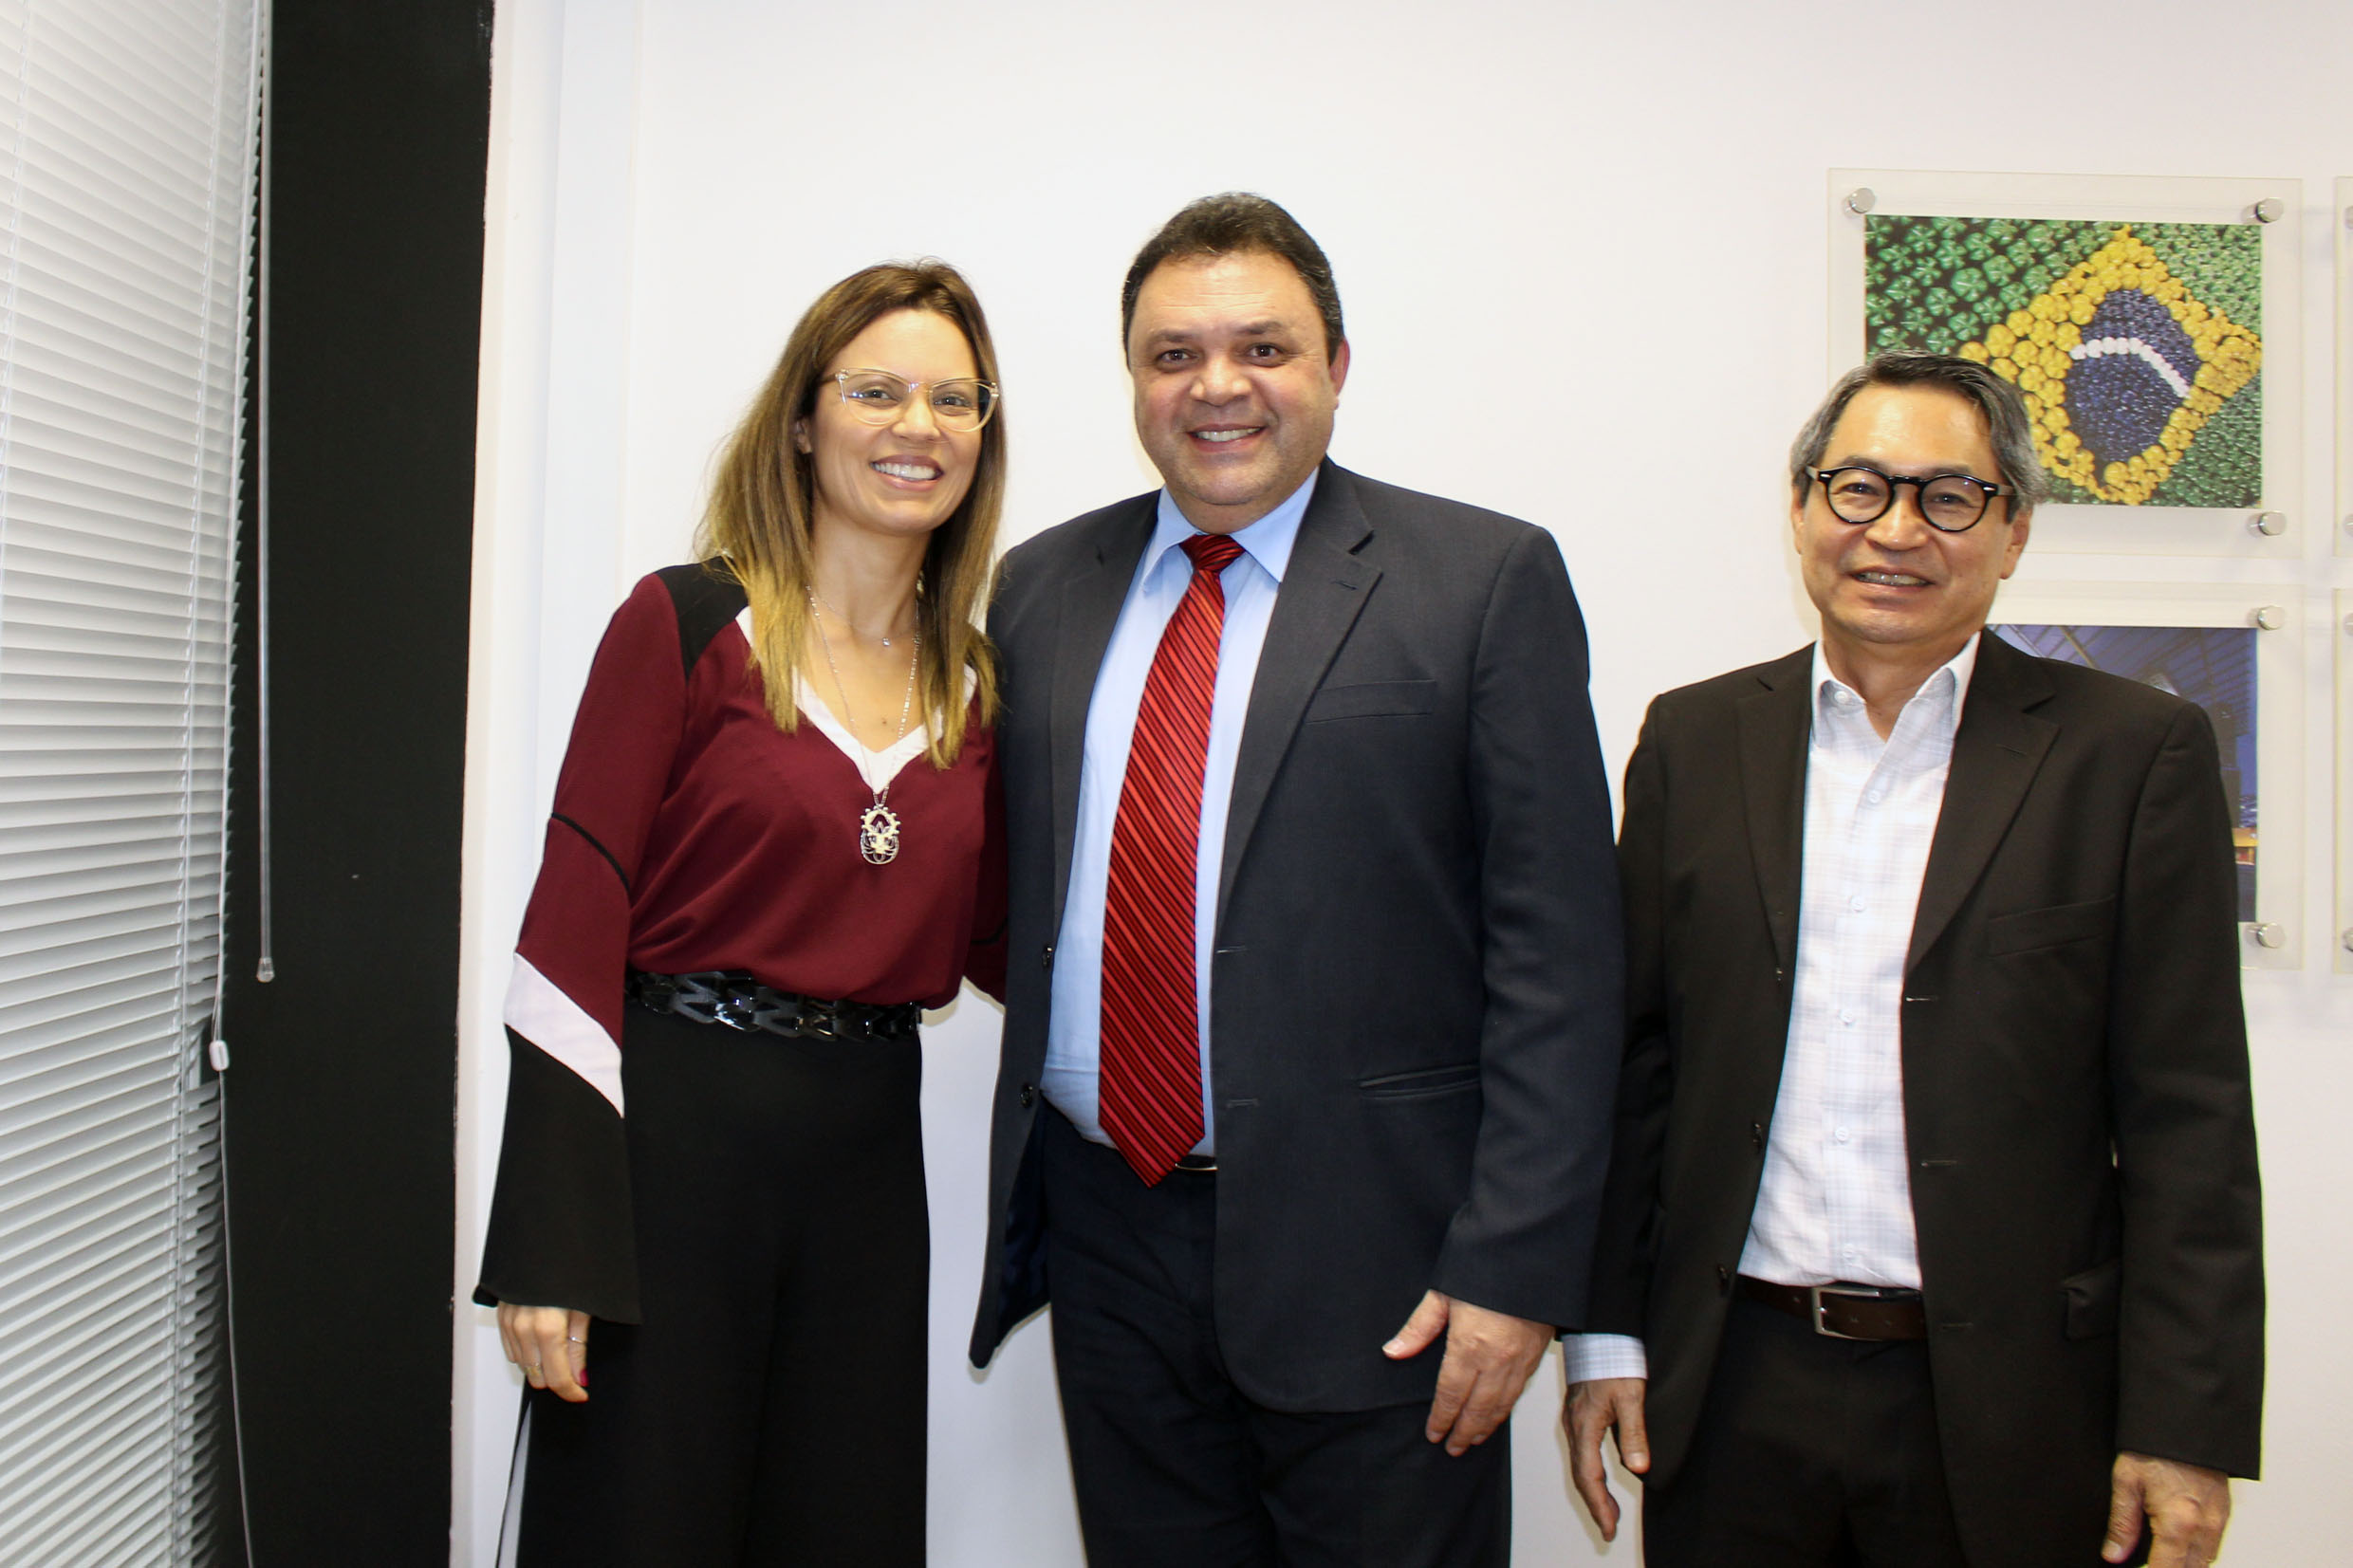 Marcos Damasio (ao centro)<a style='float:right' href='https://www3.al.sp.gov.br/repositorio/noticia/N-05-2019/fg234346.jpg' target=_blank><img src='/_img/material-file-download-white.png' width='14px' alt='Clique para baixar a imagem'></a>